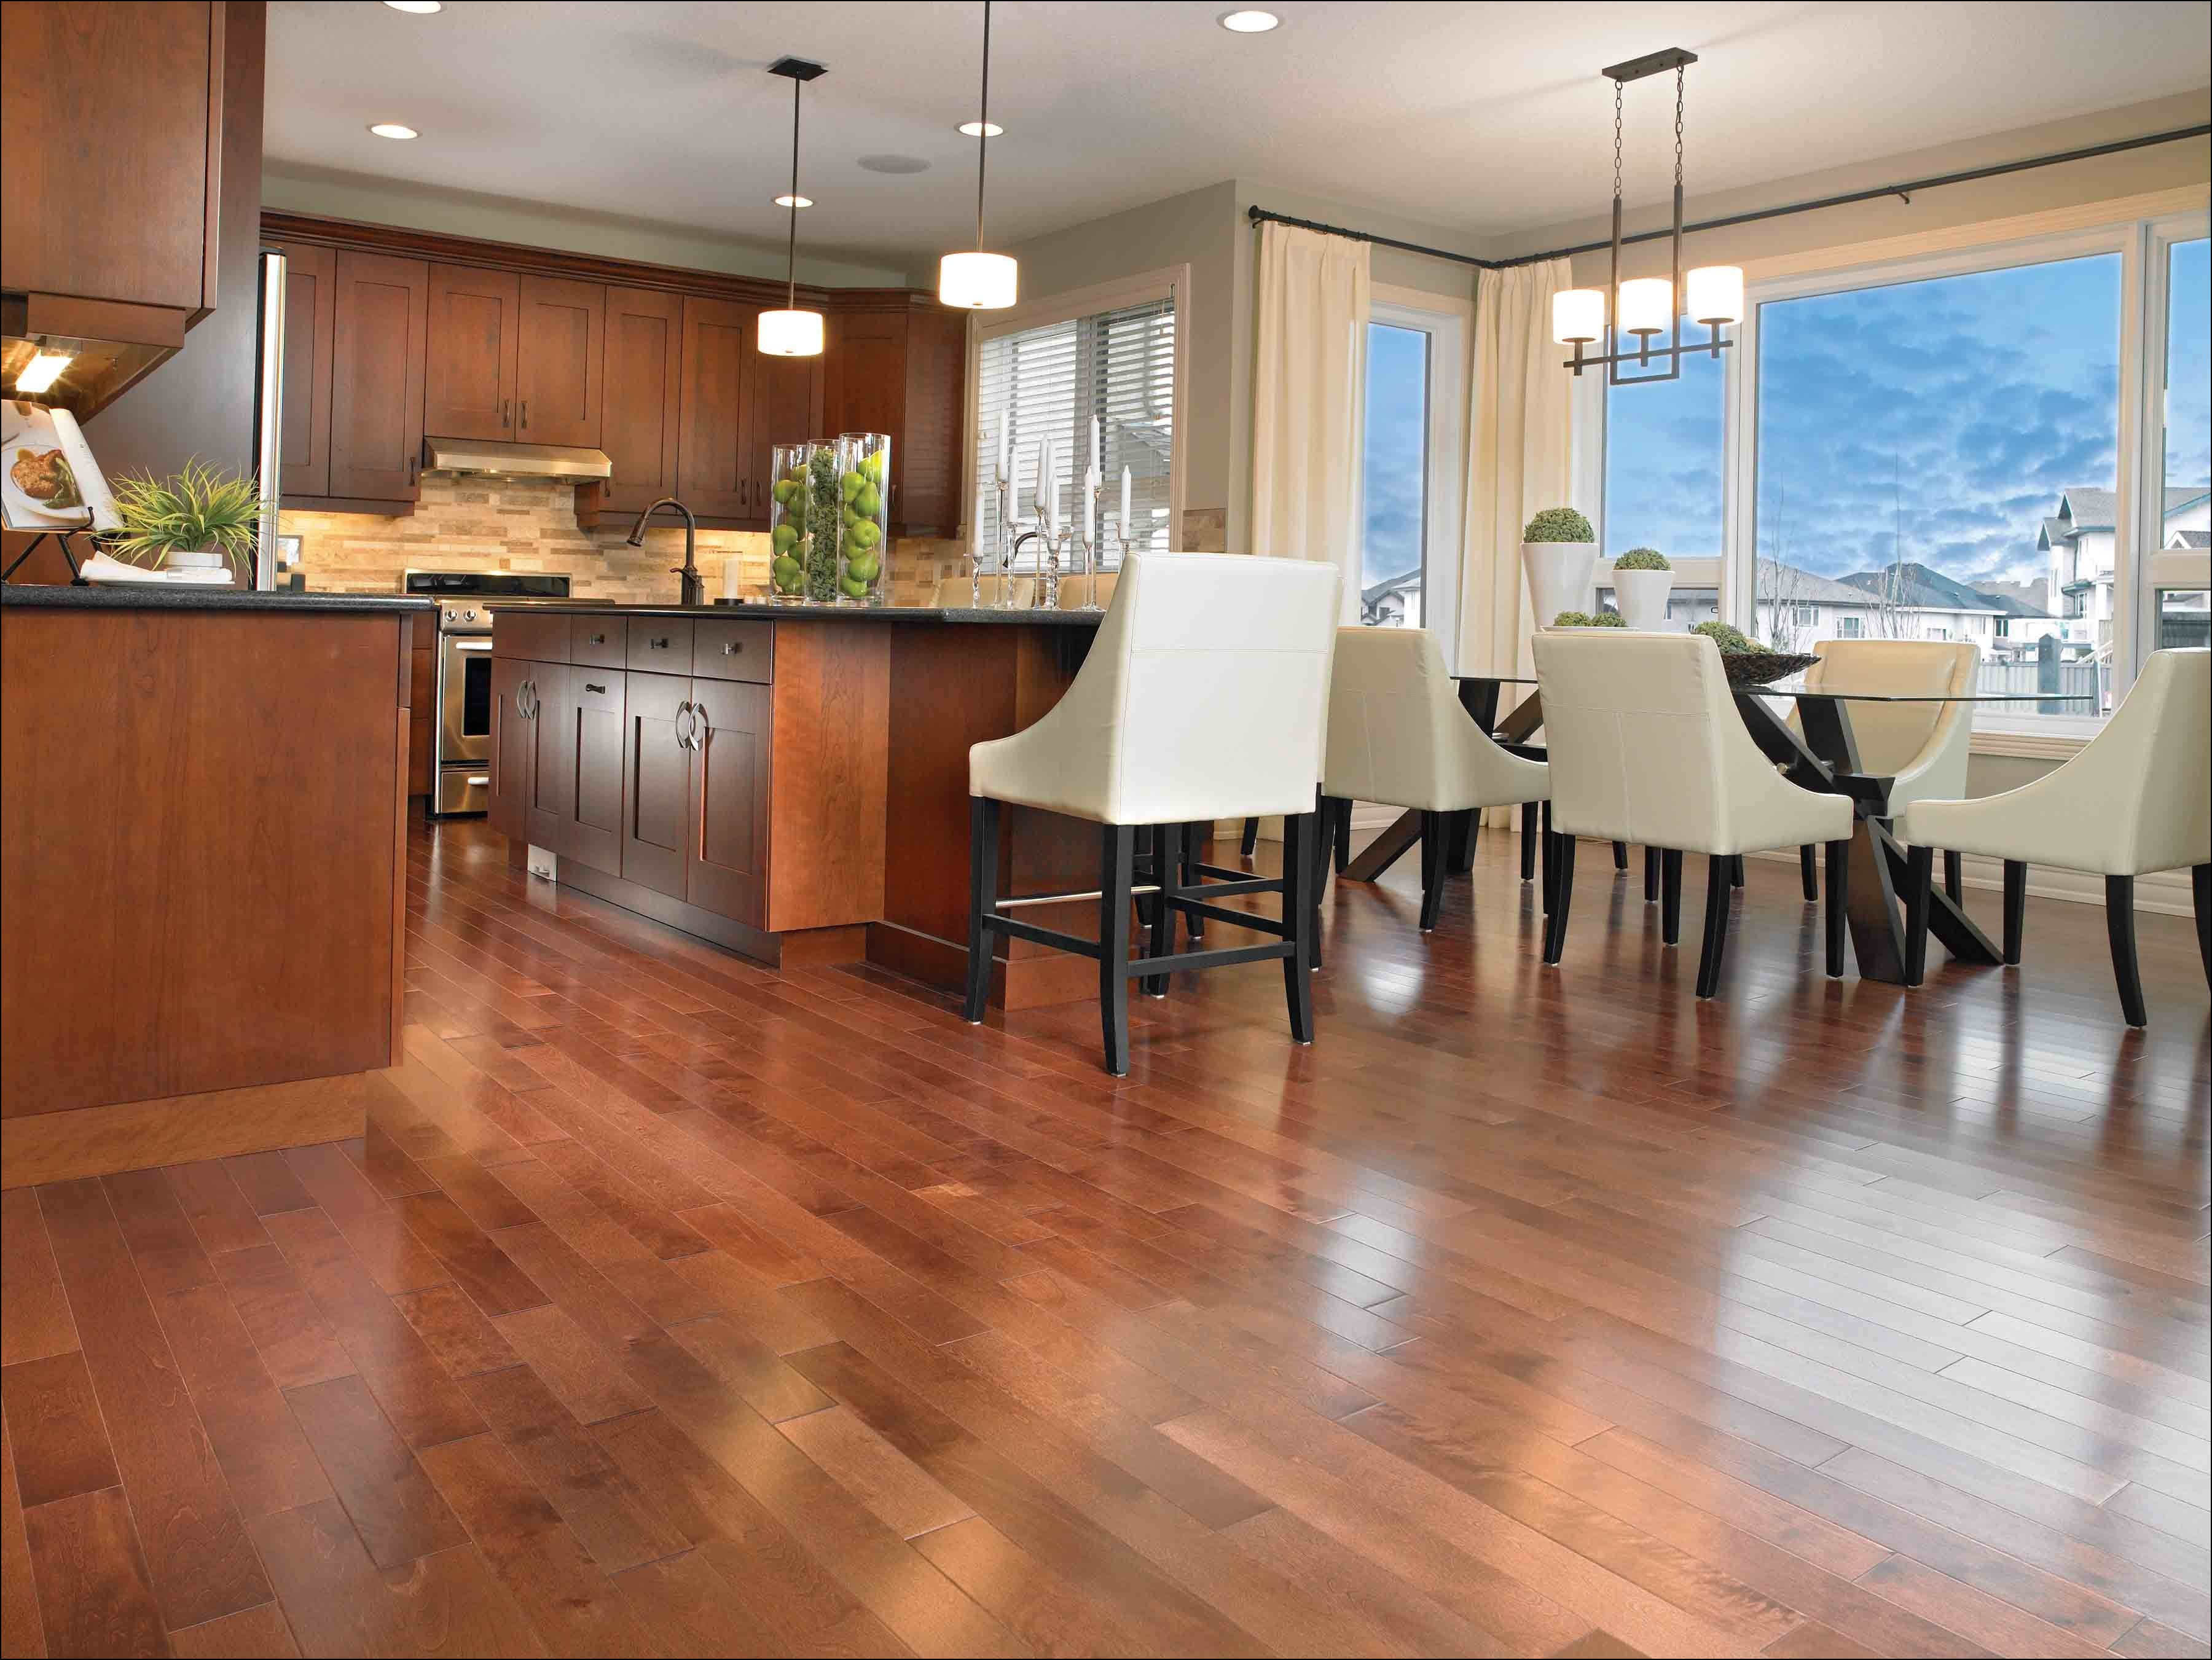 hardwood floor installation cost los angeles of hardwood flooring suppliers france flooring ideas with hardwood flooring installation san diego images 54 best exotic flooring images on pinterest of hardwood flooring